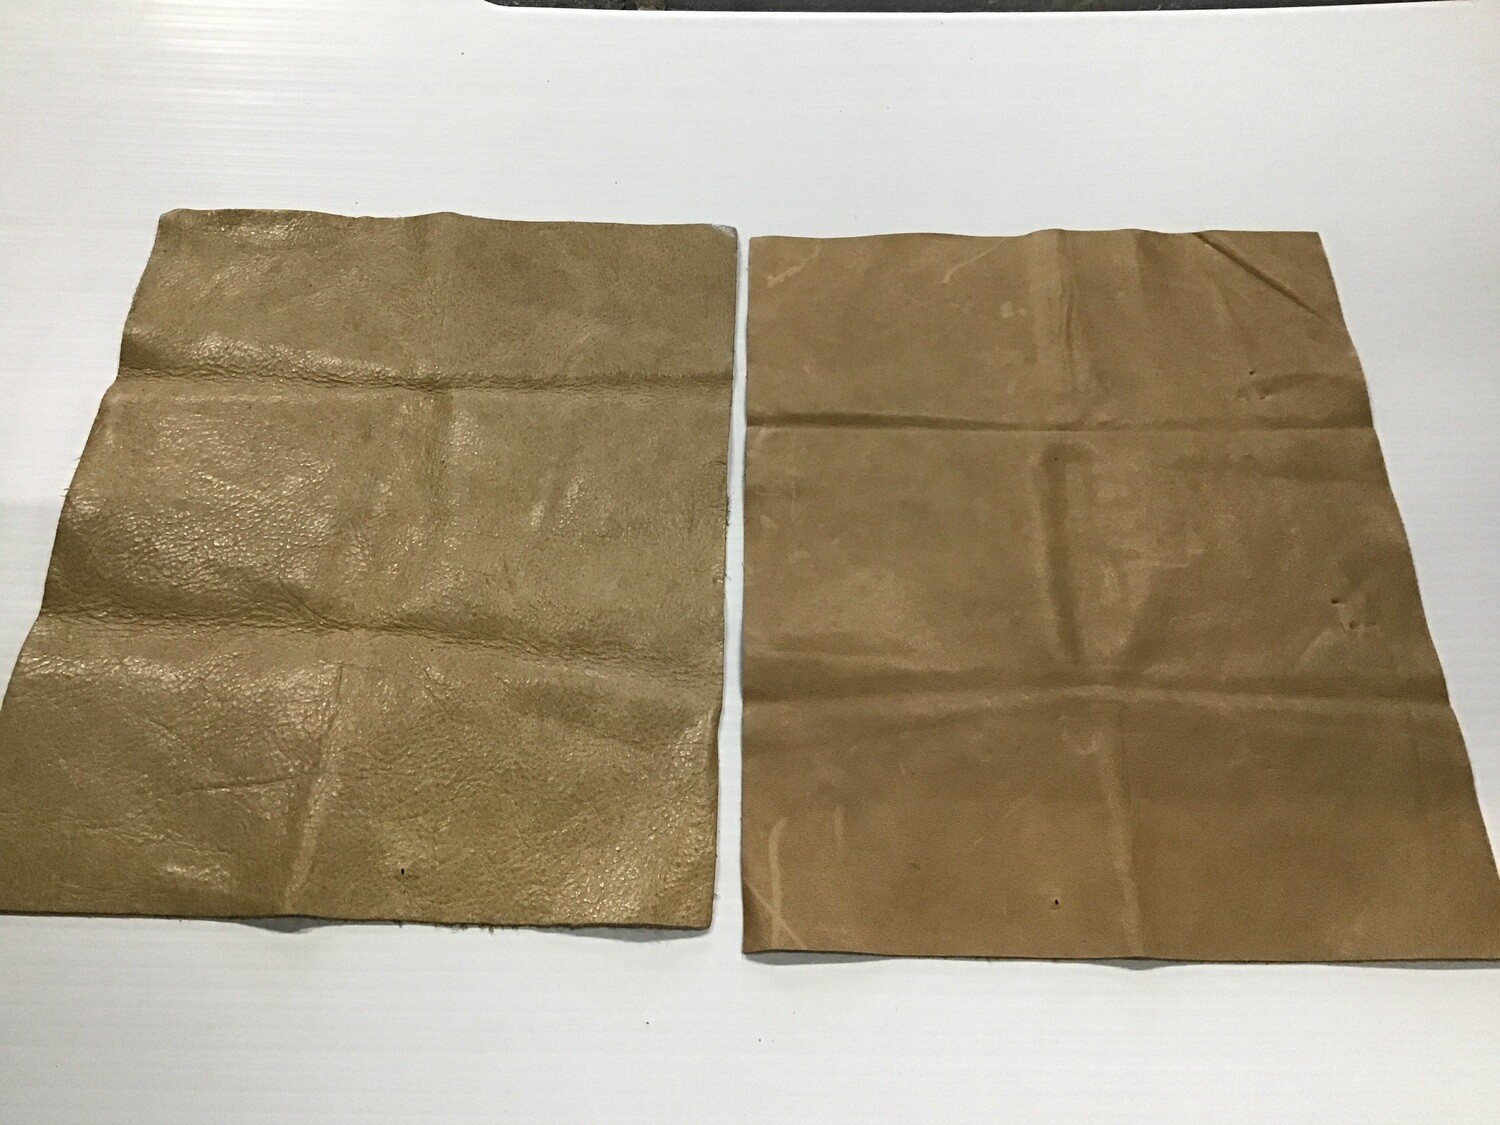 Leather: 2 Sample Pieces